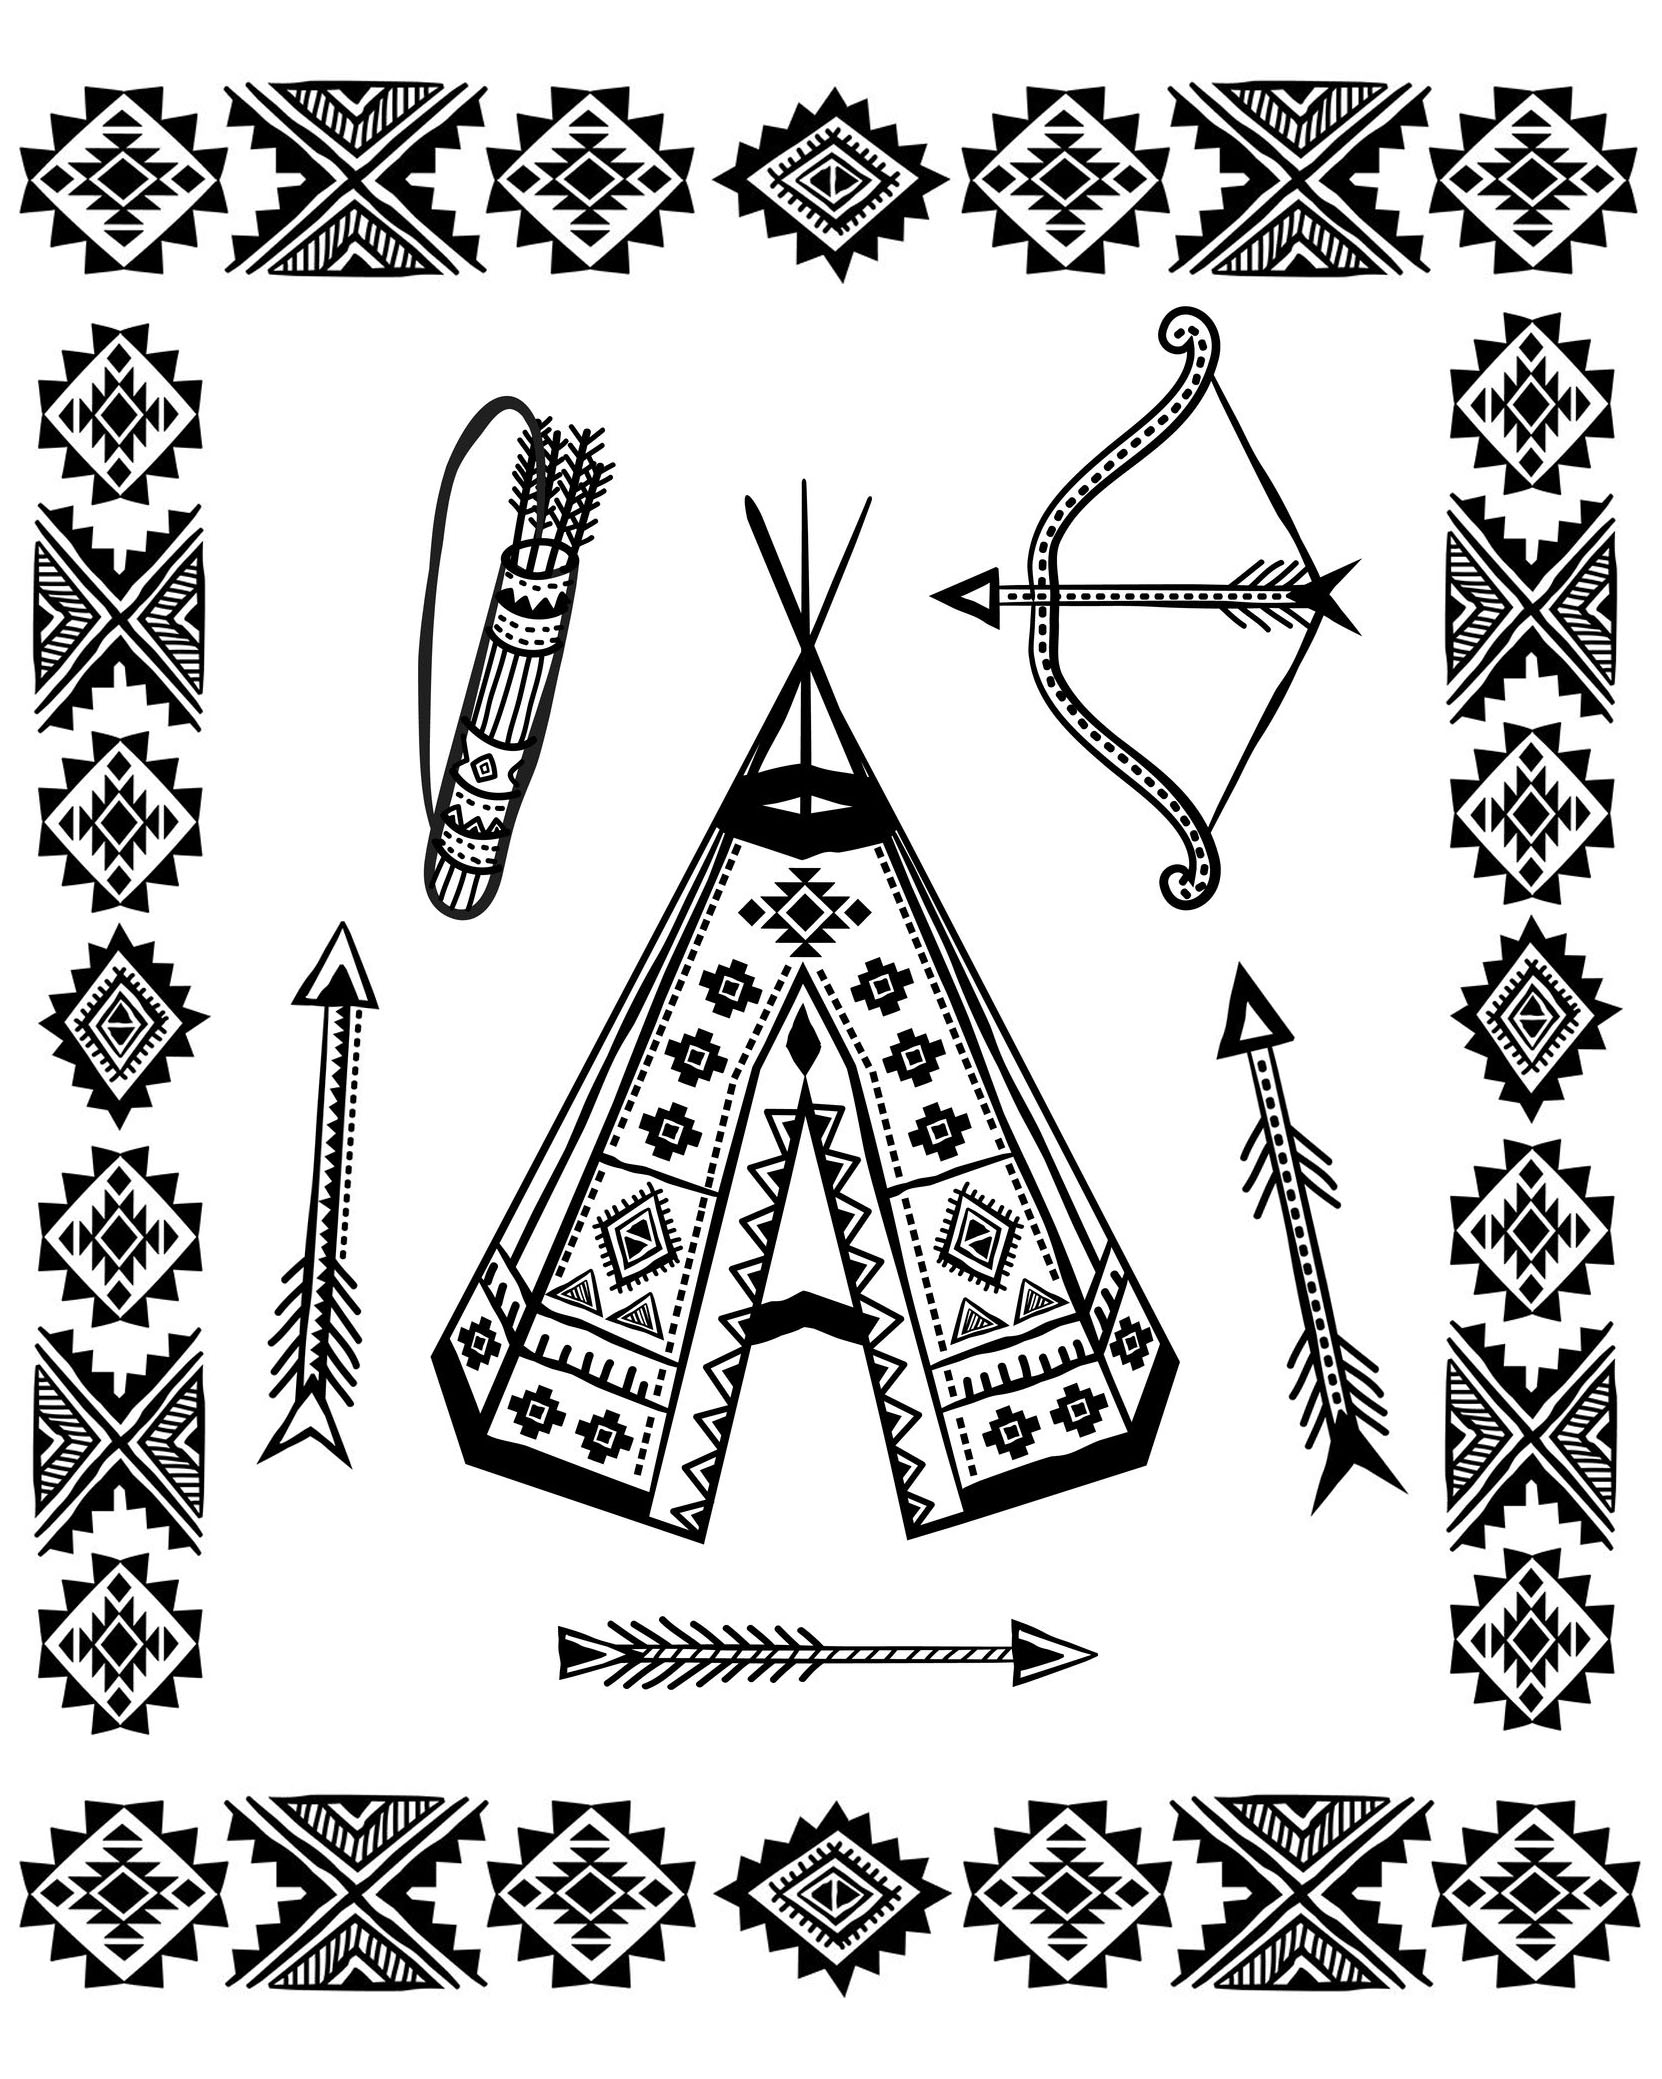 coloring page with a tipi and other symbols from the gallery native americans